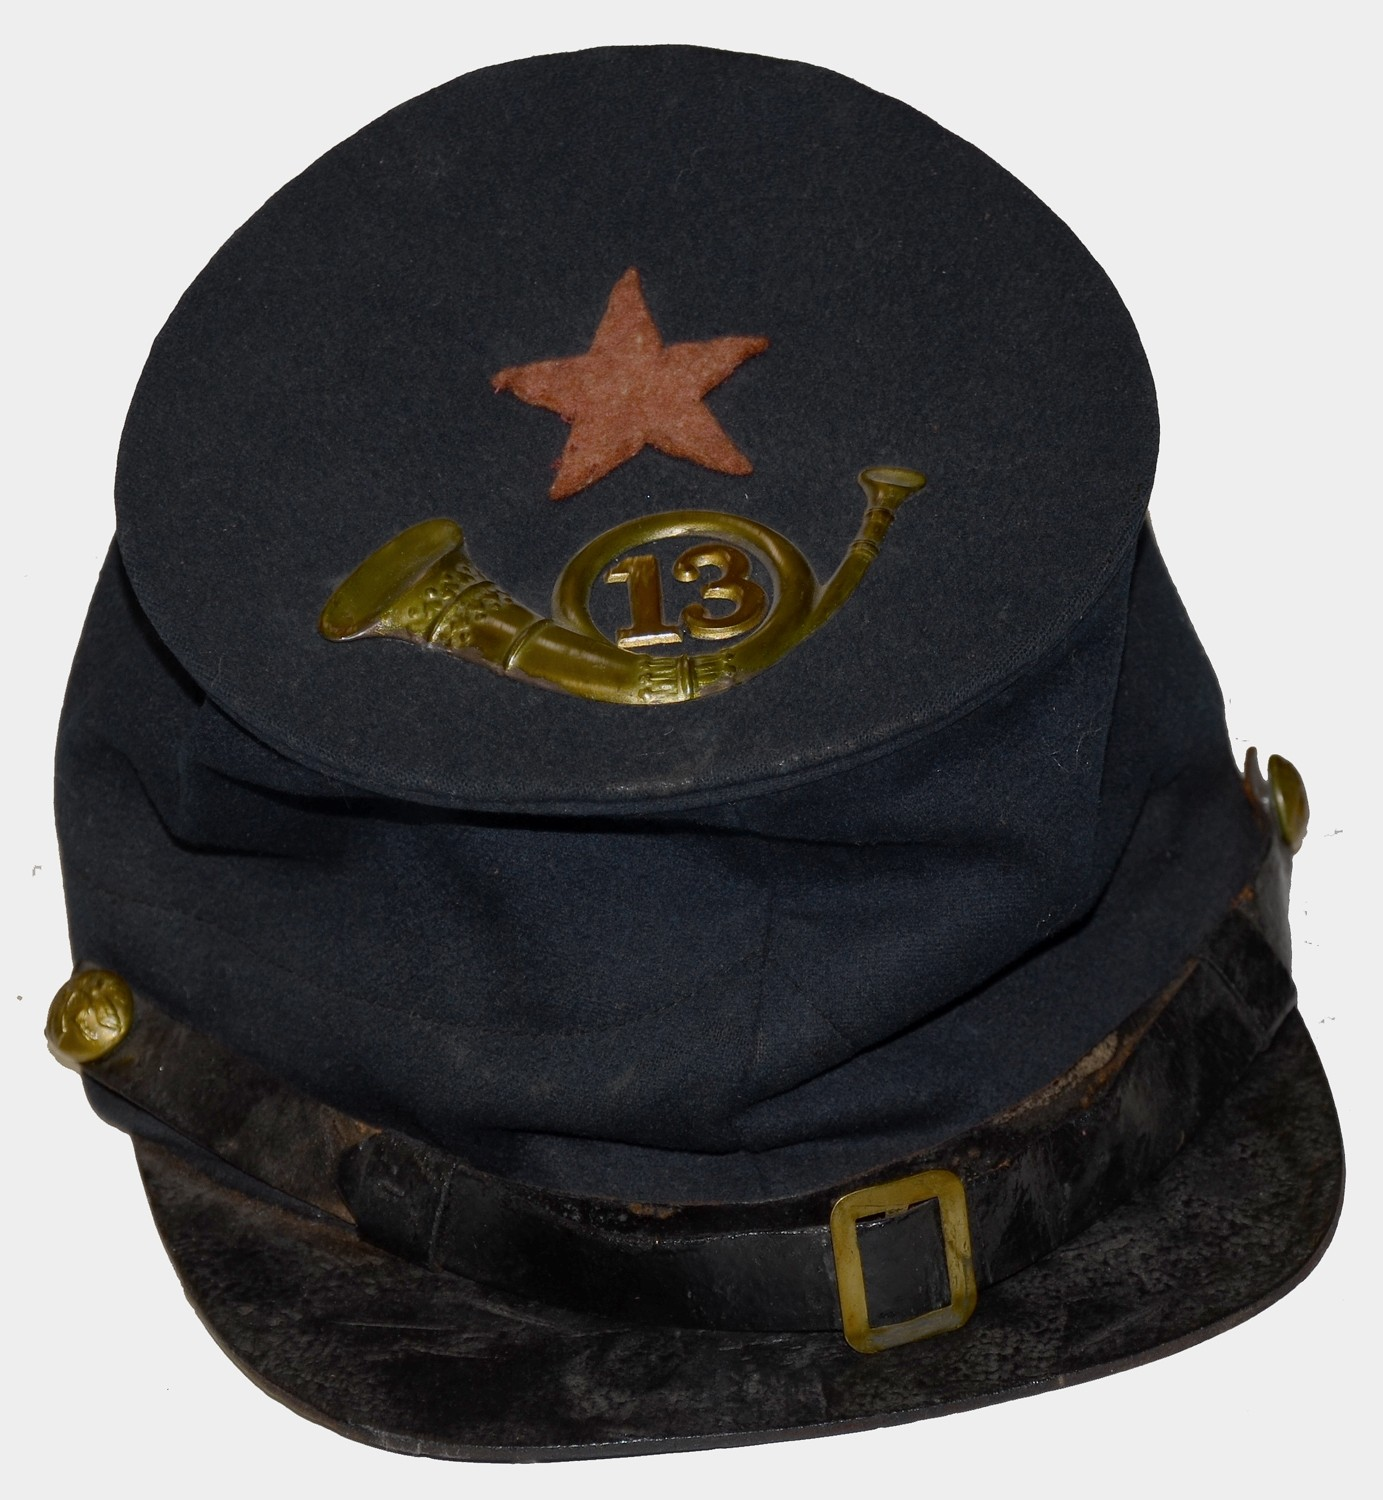 VERY NICE L.J. & I. PHILLIPS (TYPE-II) FORAGE CAP WITH CORPS BADGE AND INSIGNIA FOR THE 13th NEW JERSEY 12th AND 20th ARMY CORPS